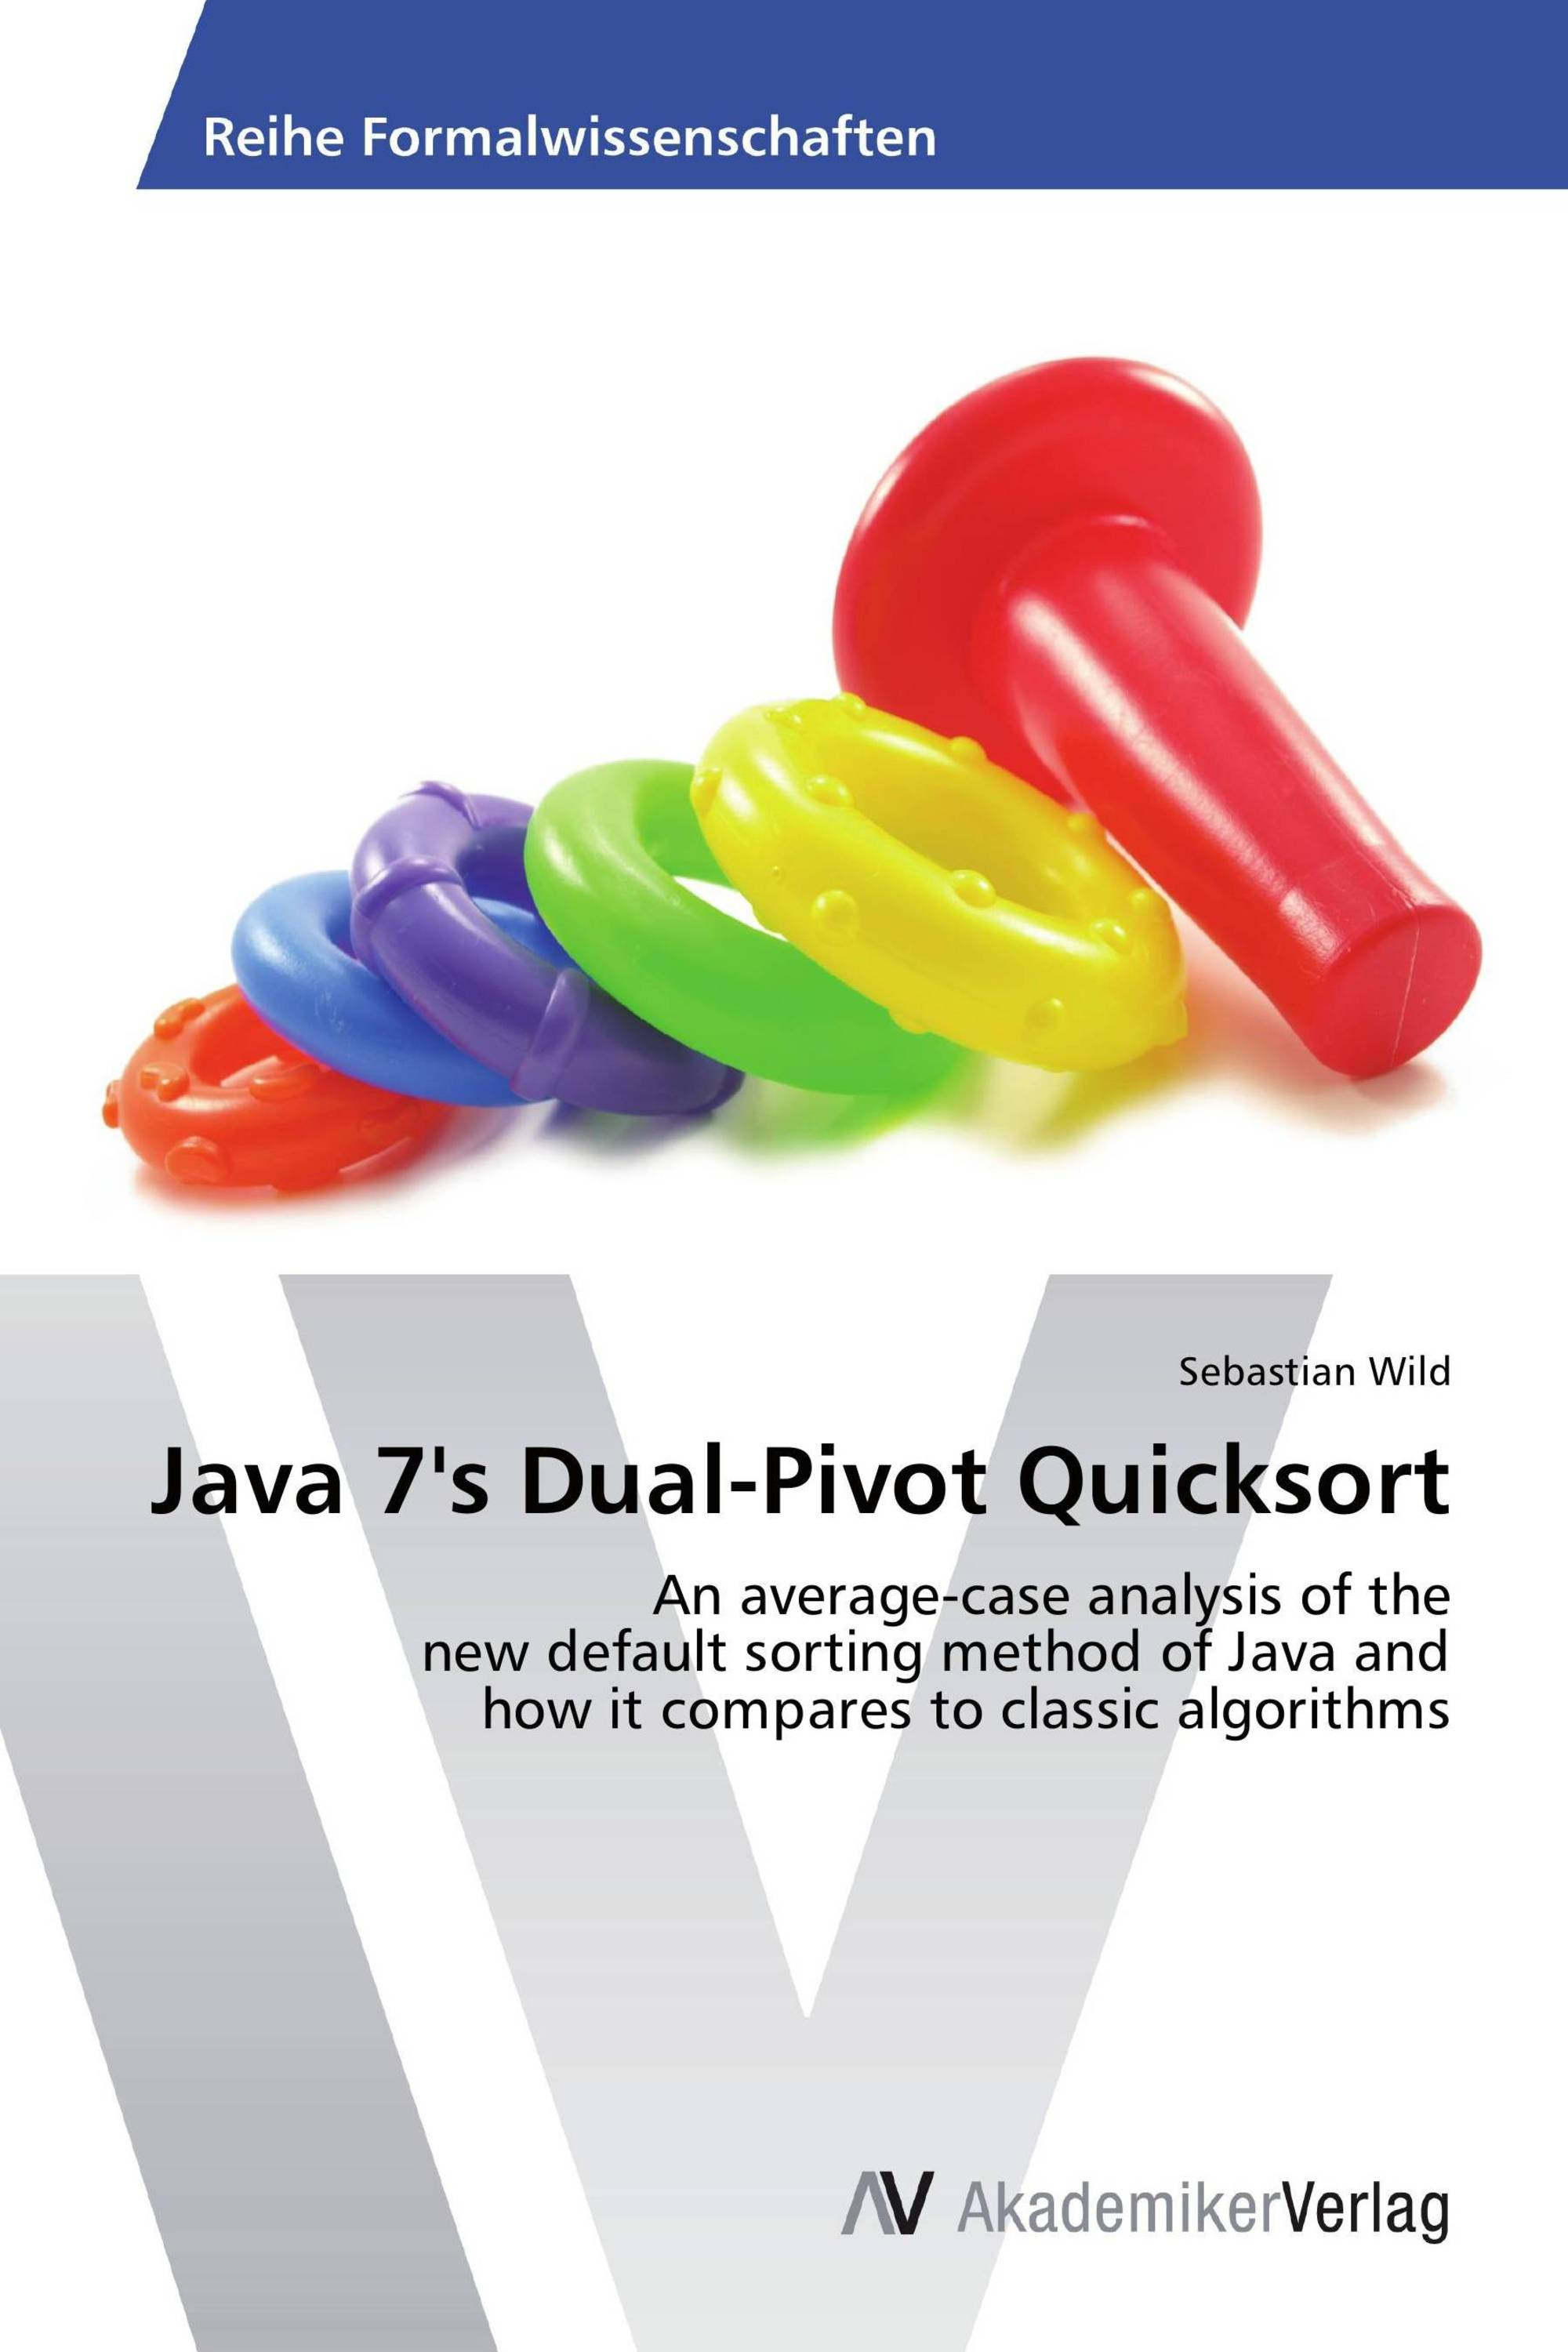 Java 7's Dual-Pivot Quicksort